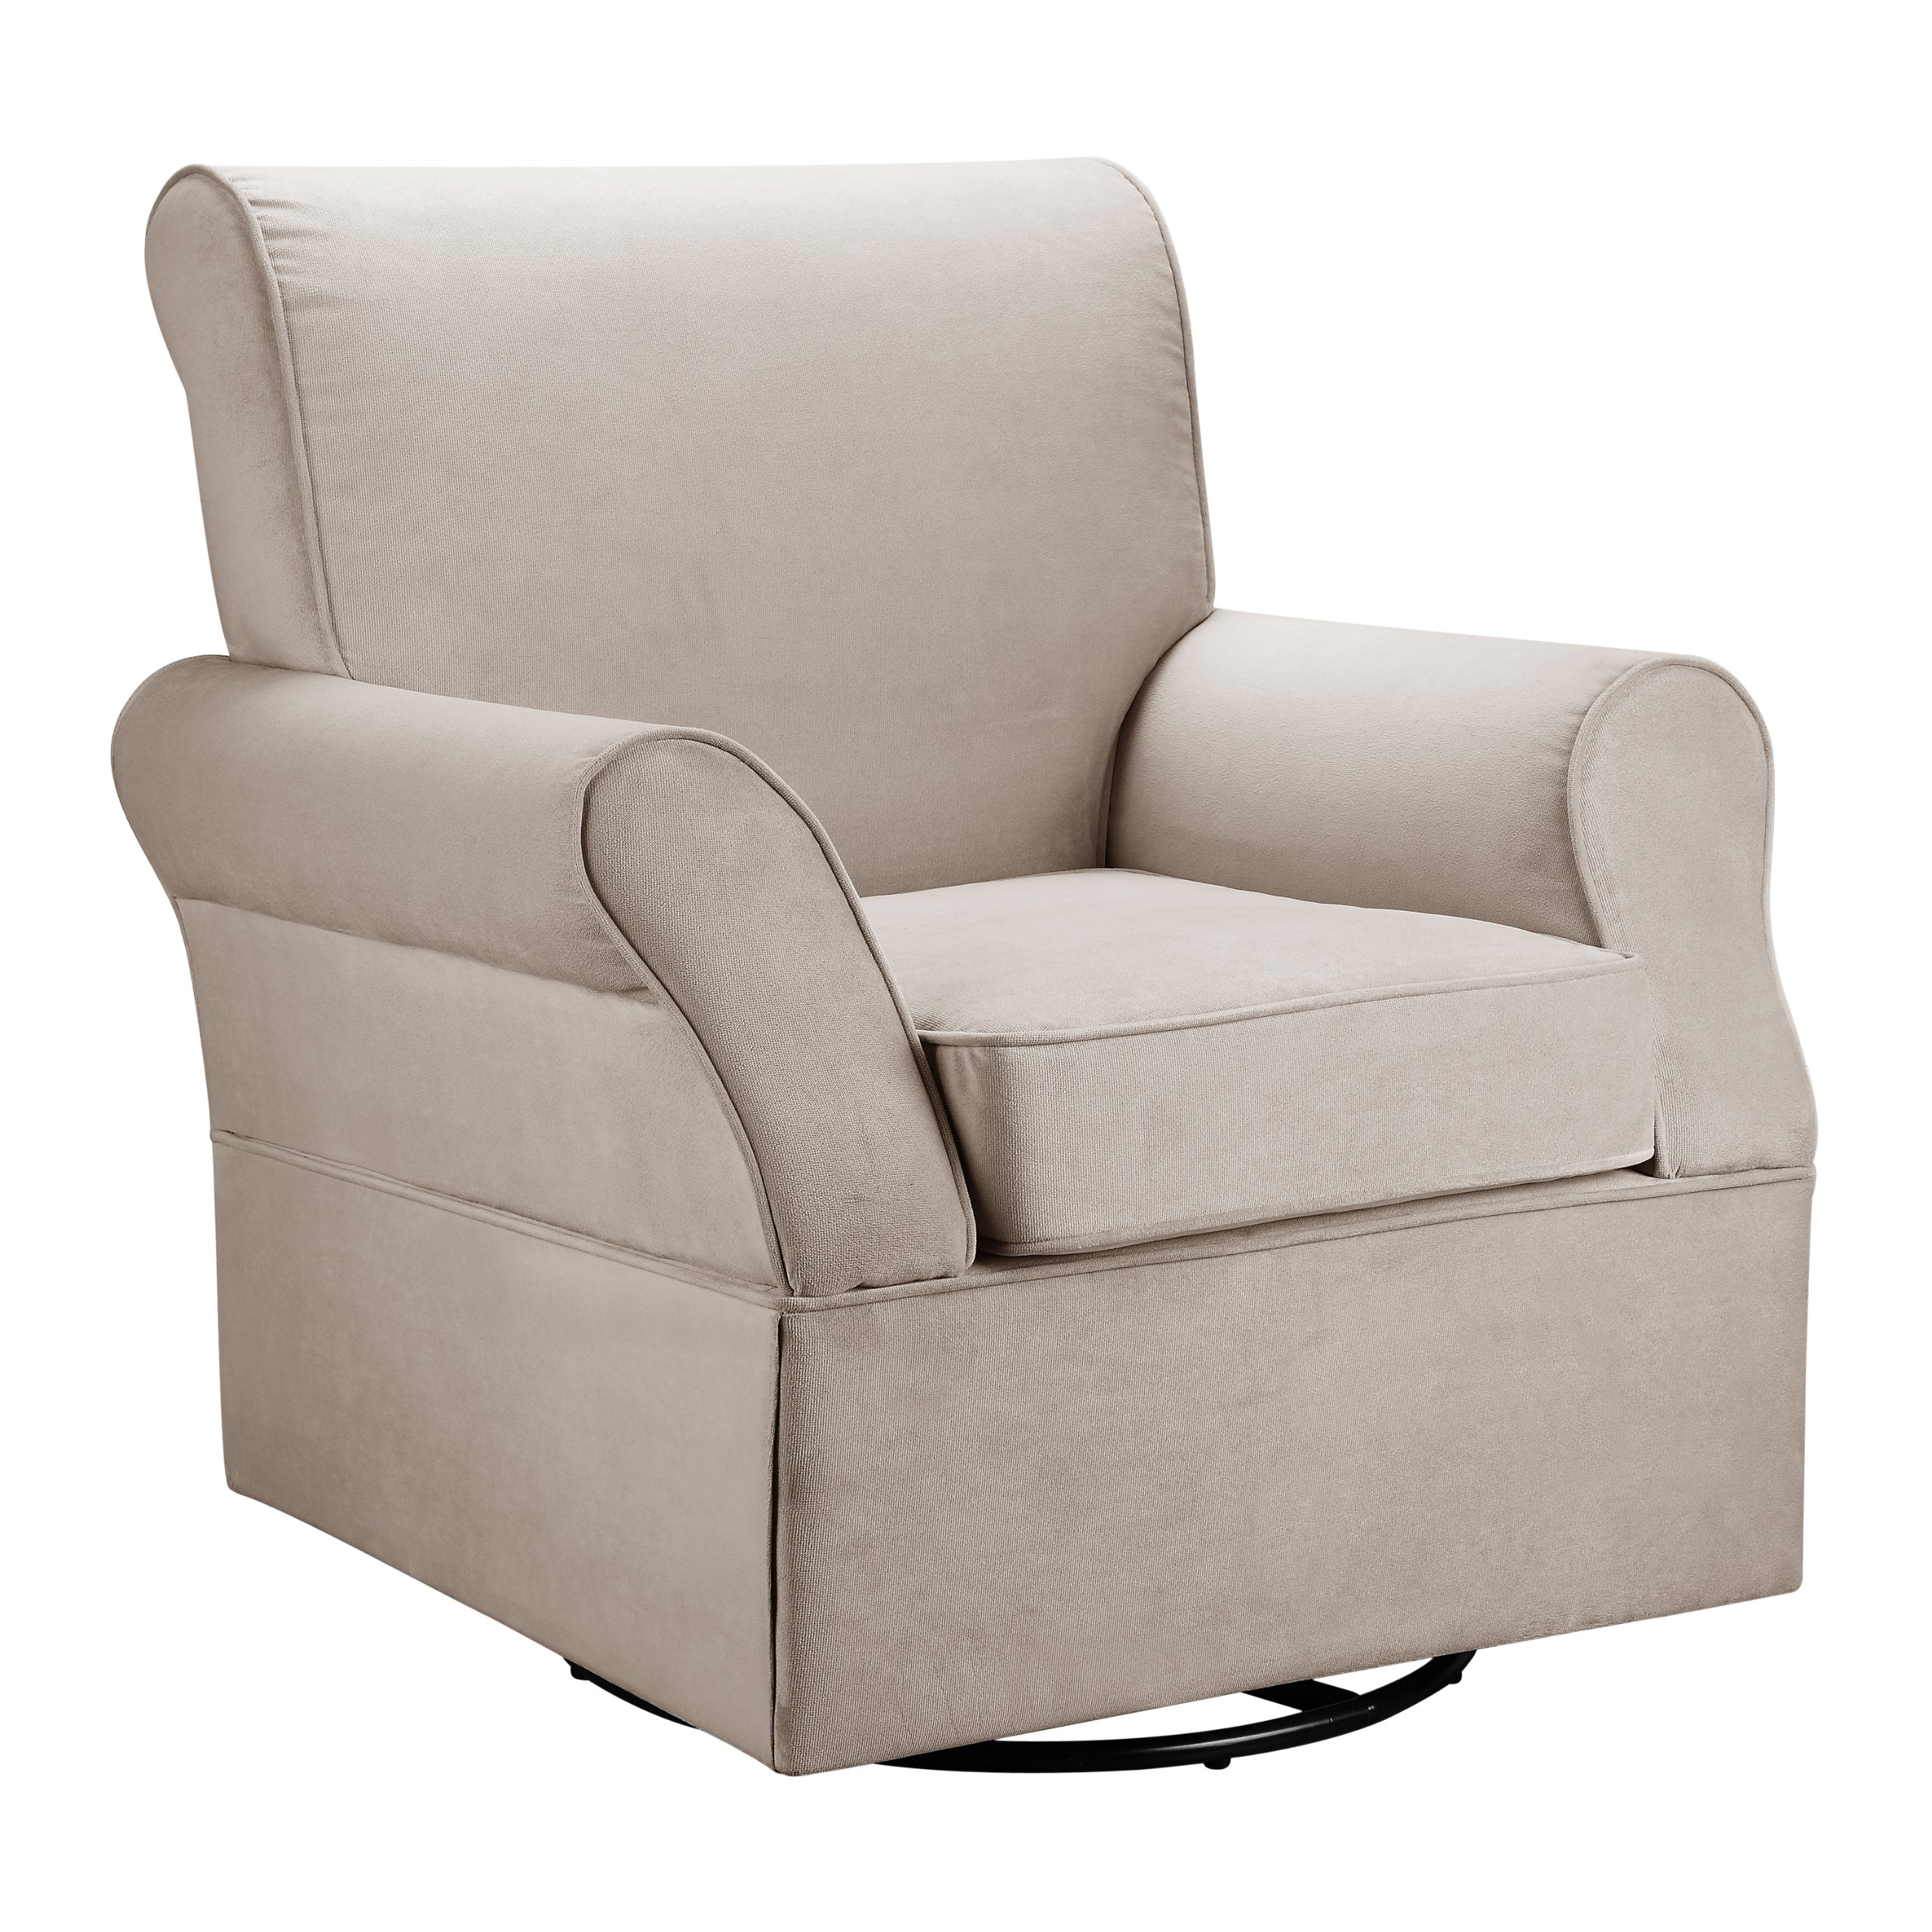 Baby Relax Swivel Glider, Comet Doe - Color: White by Baby Relax